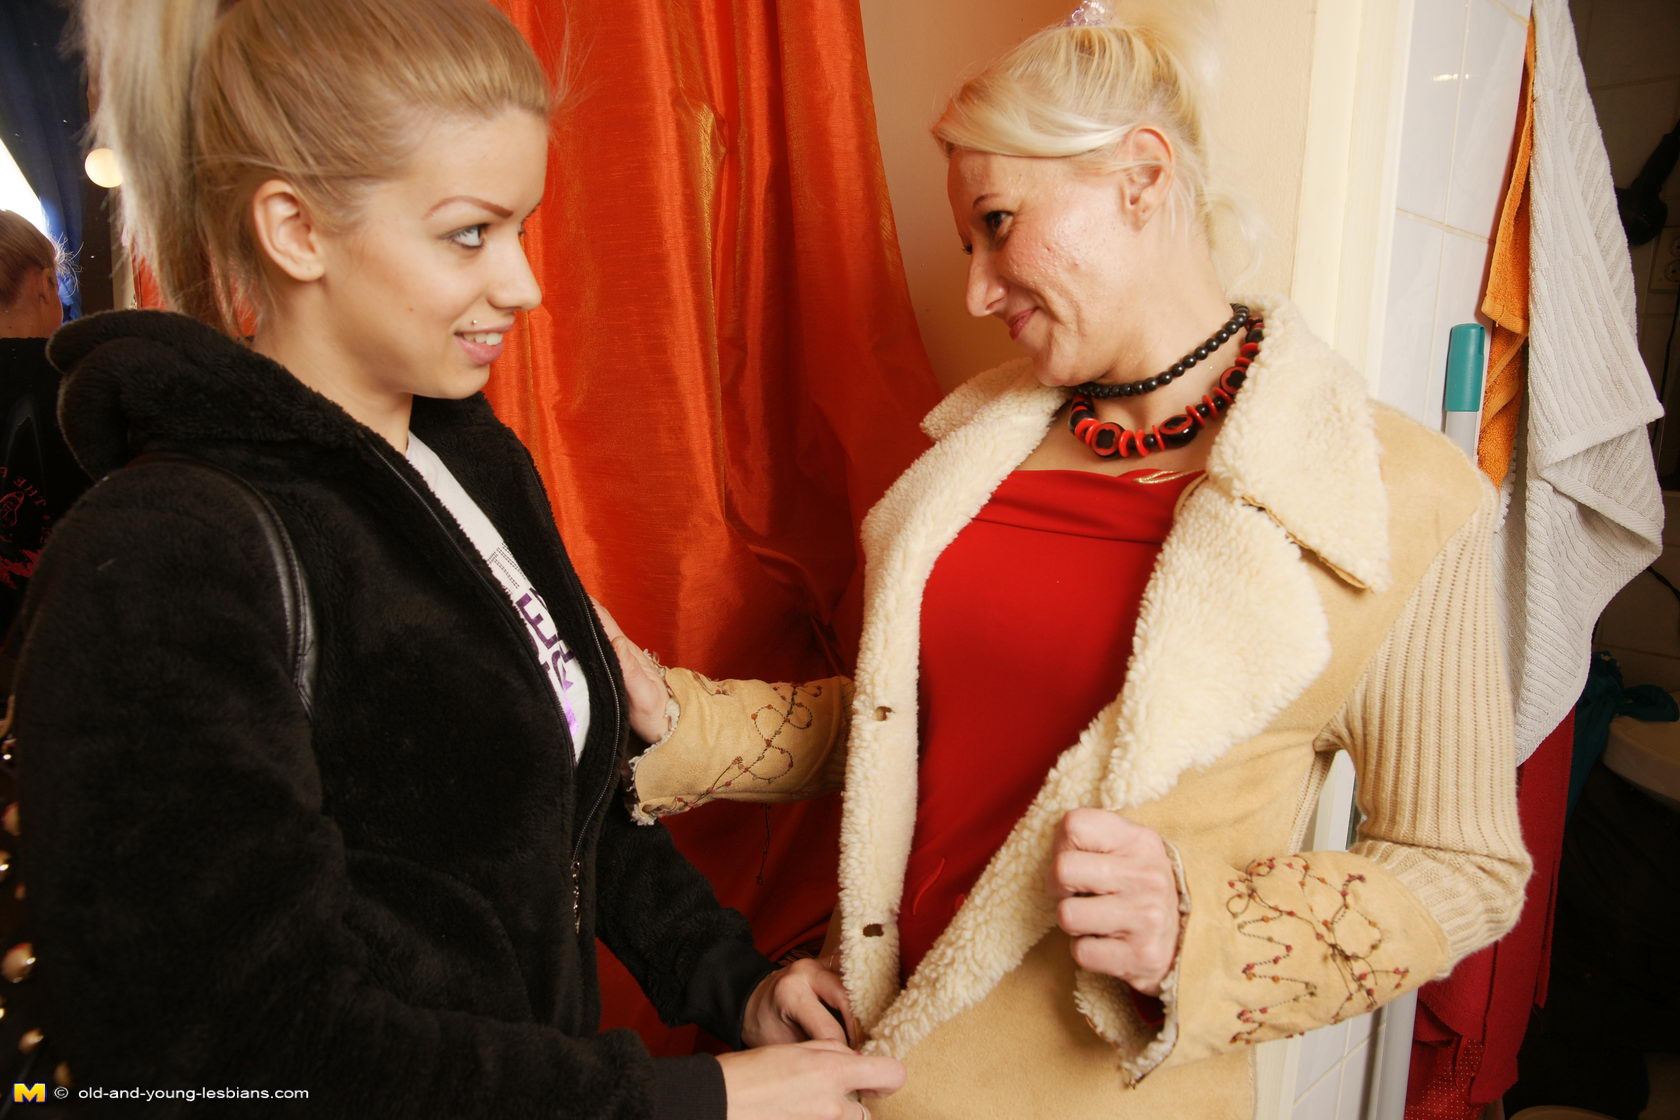 affiliates old and young lesbians free custom galleries 1245 0013 47890